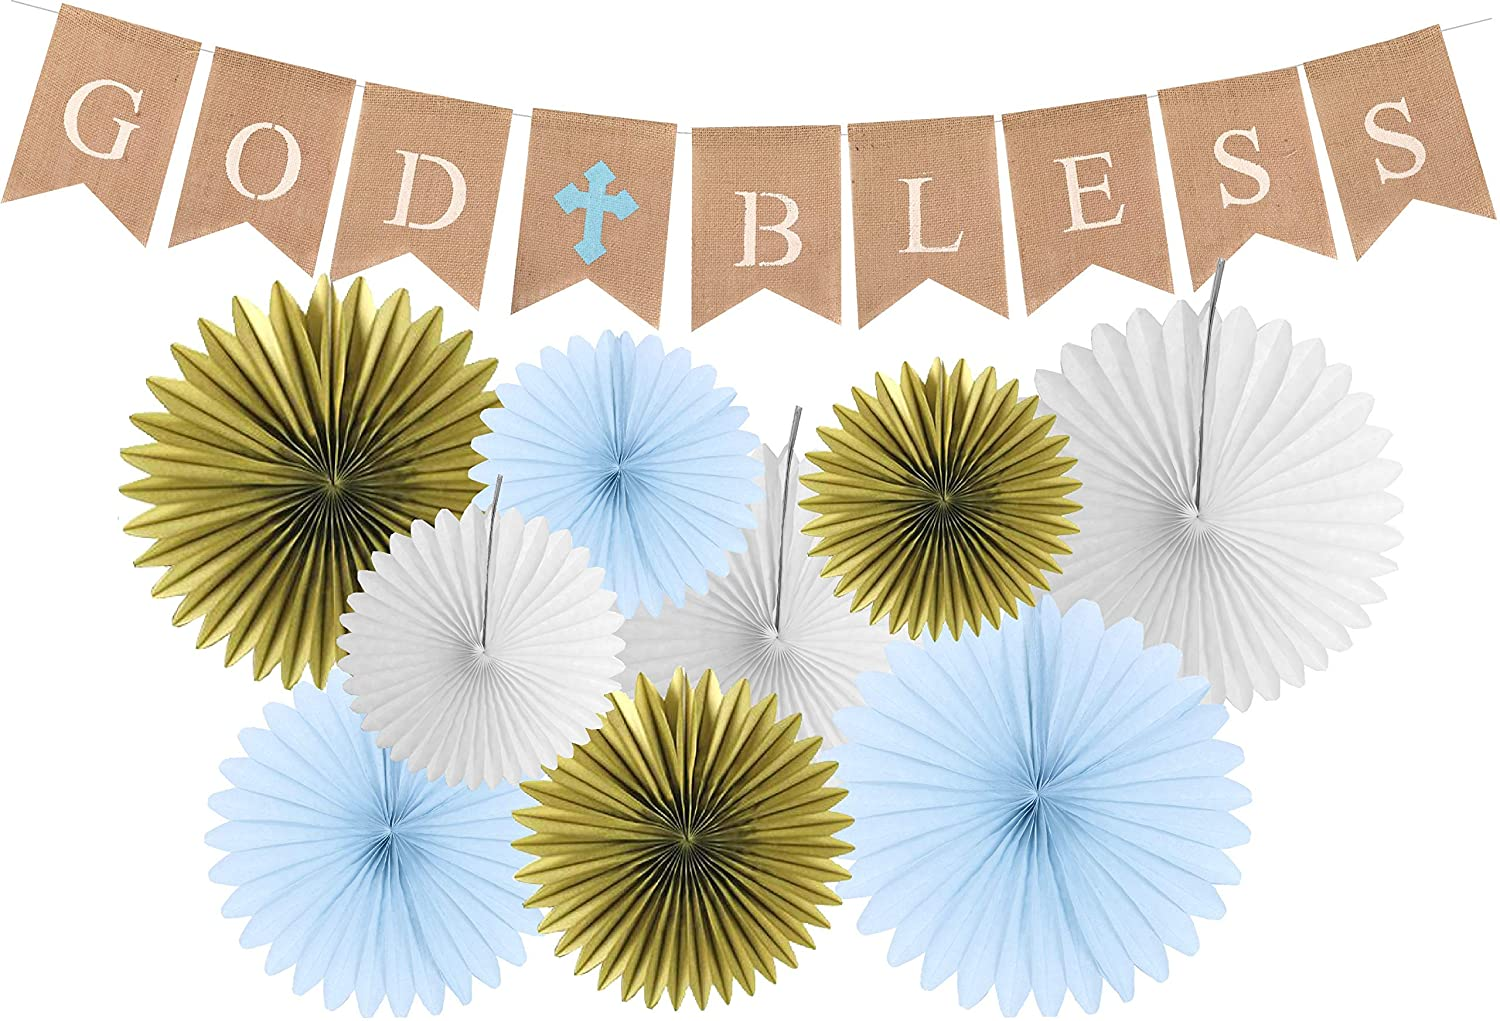 MEANT2TOBE God Bless Baptism Banner | First Communion Party Banner | Christening Decorations for Wedding | Baby Baptism Decorations for Boys | 9 Premium Glittering Matching Paper Fans